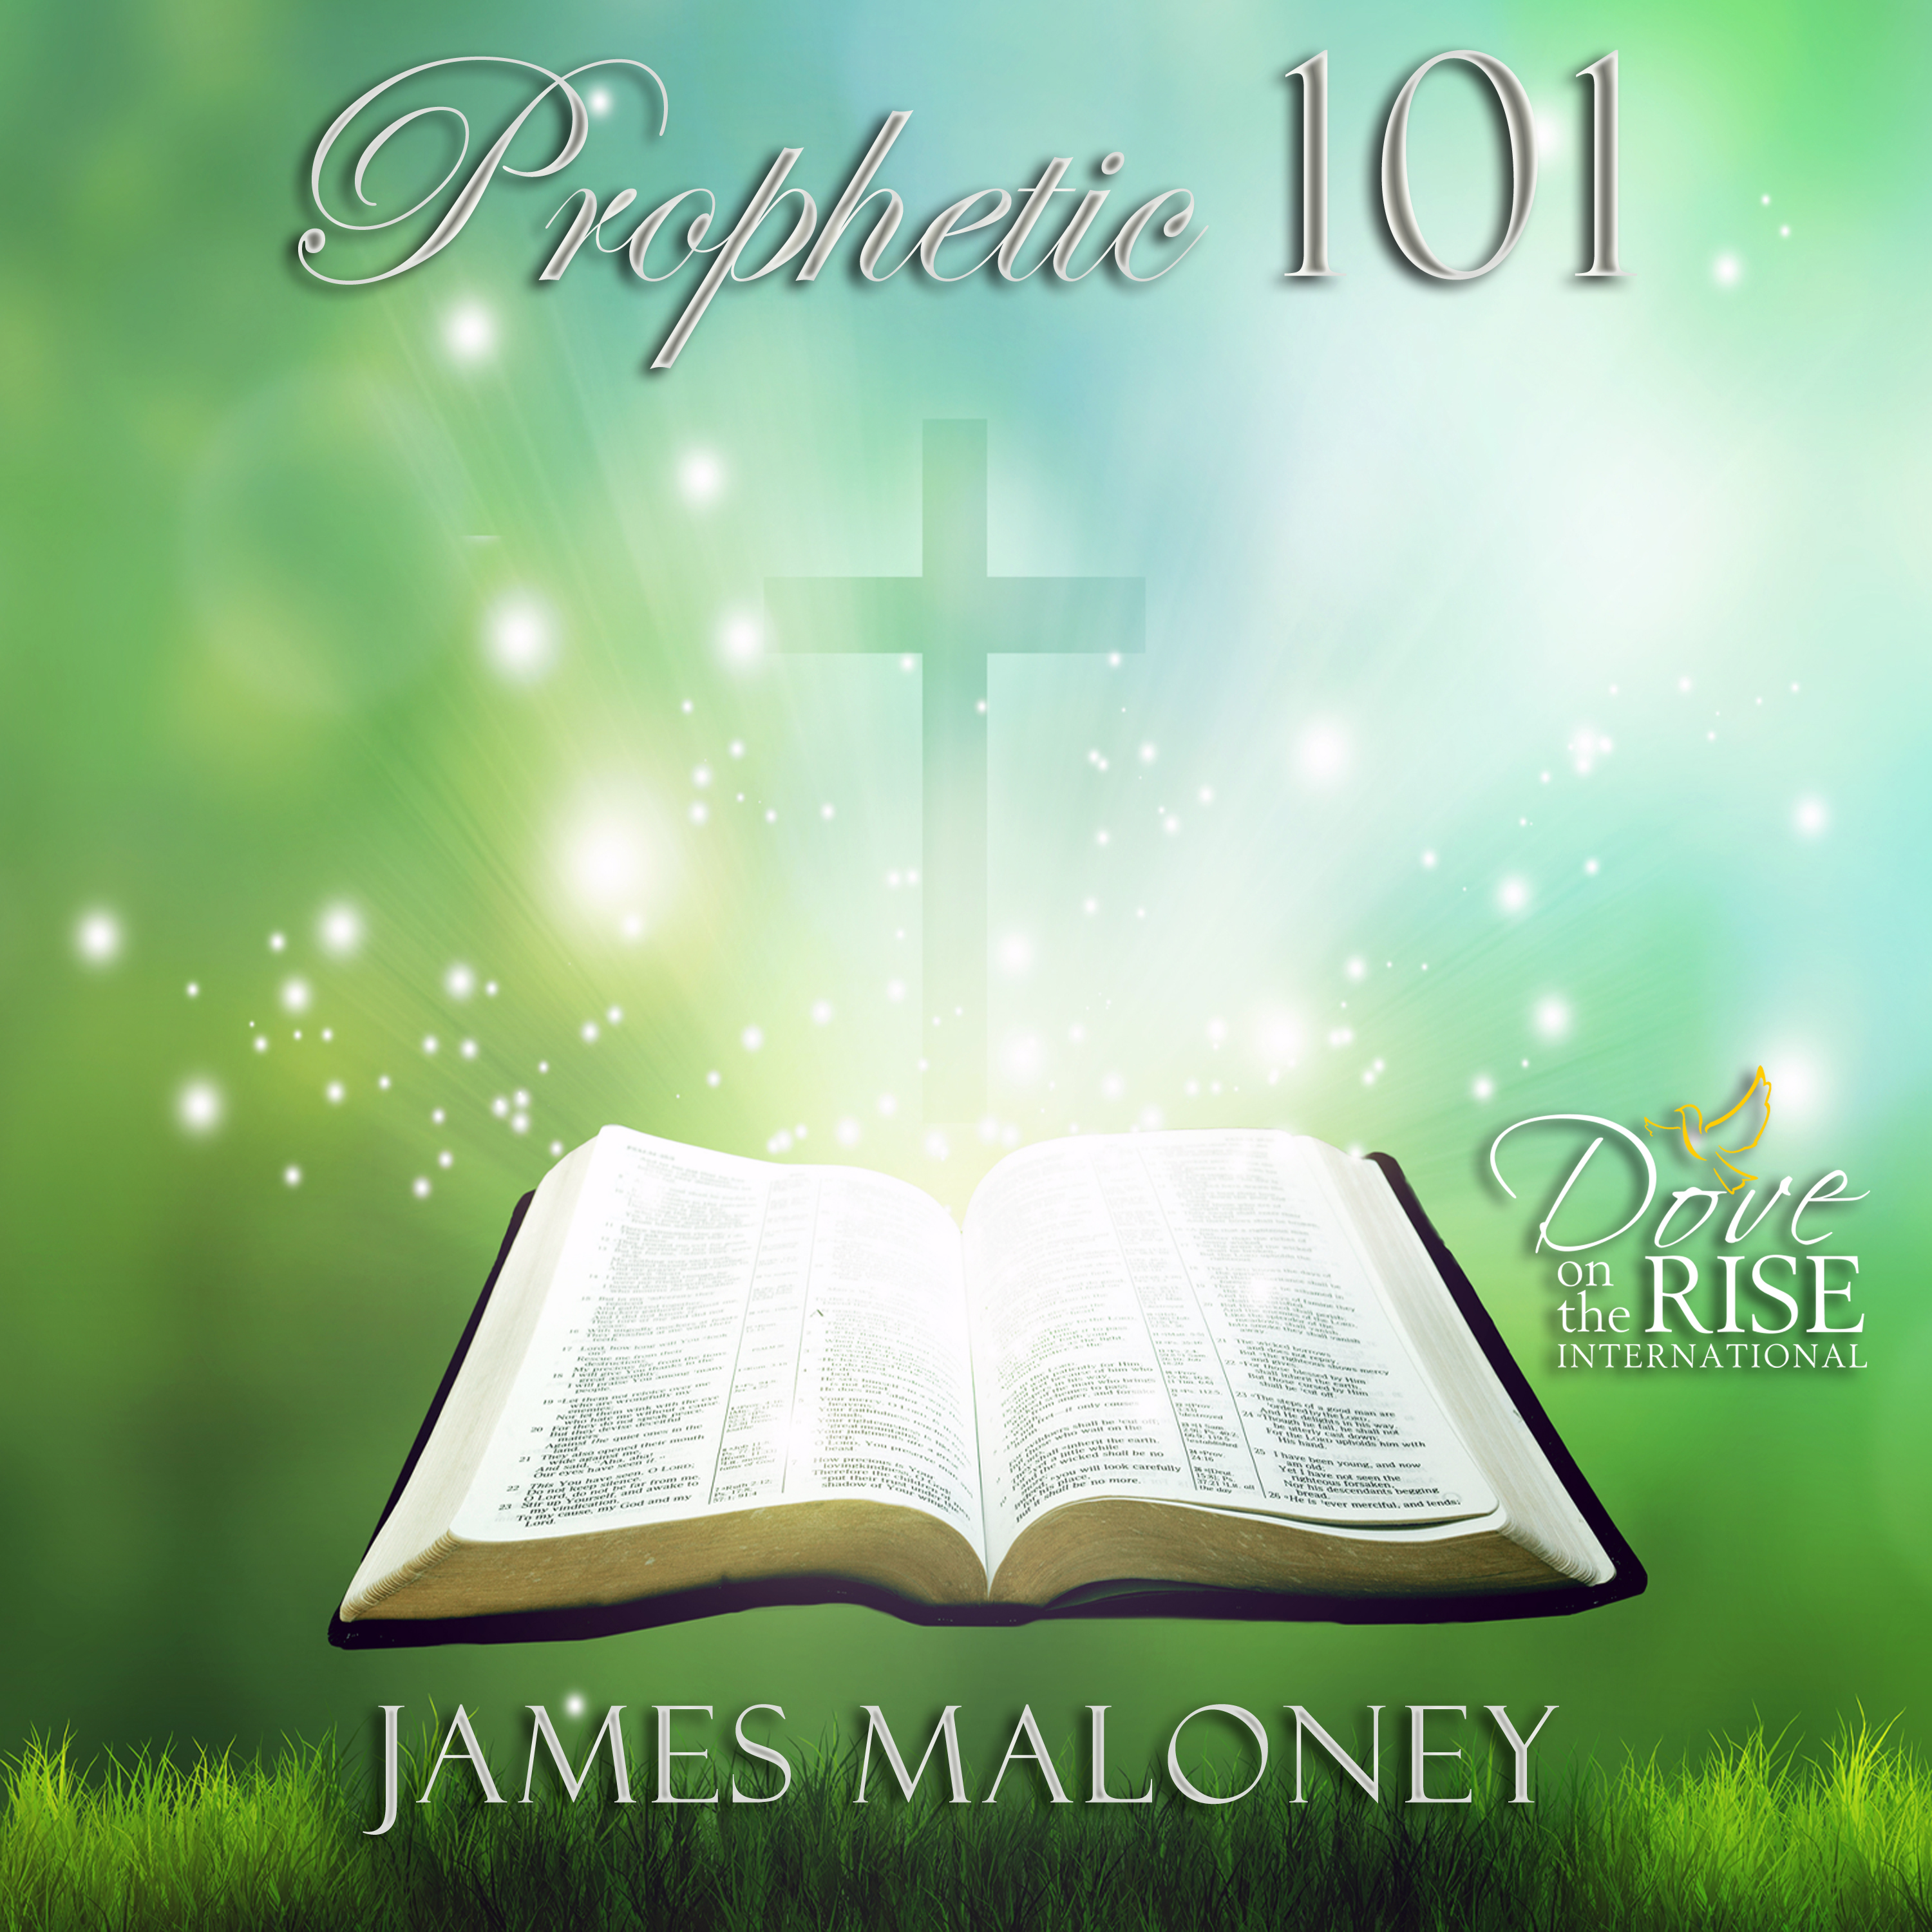 The Testimony of Jesus (Prophetic 101 Series)